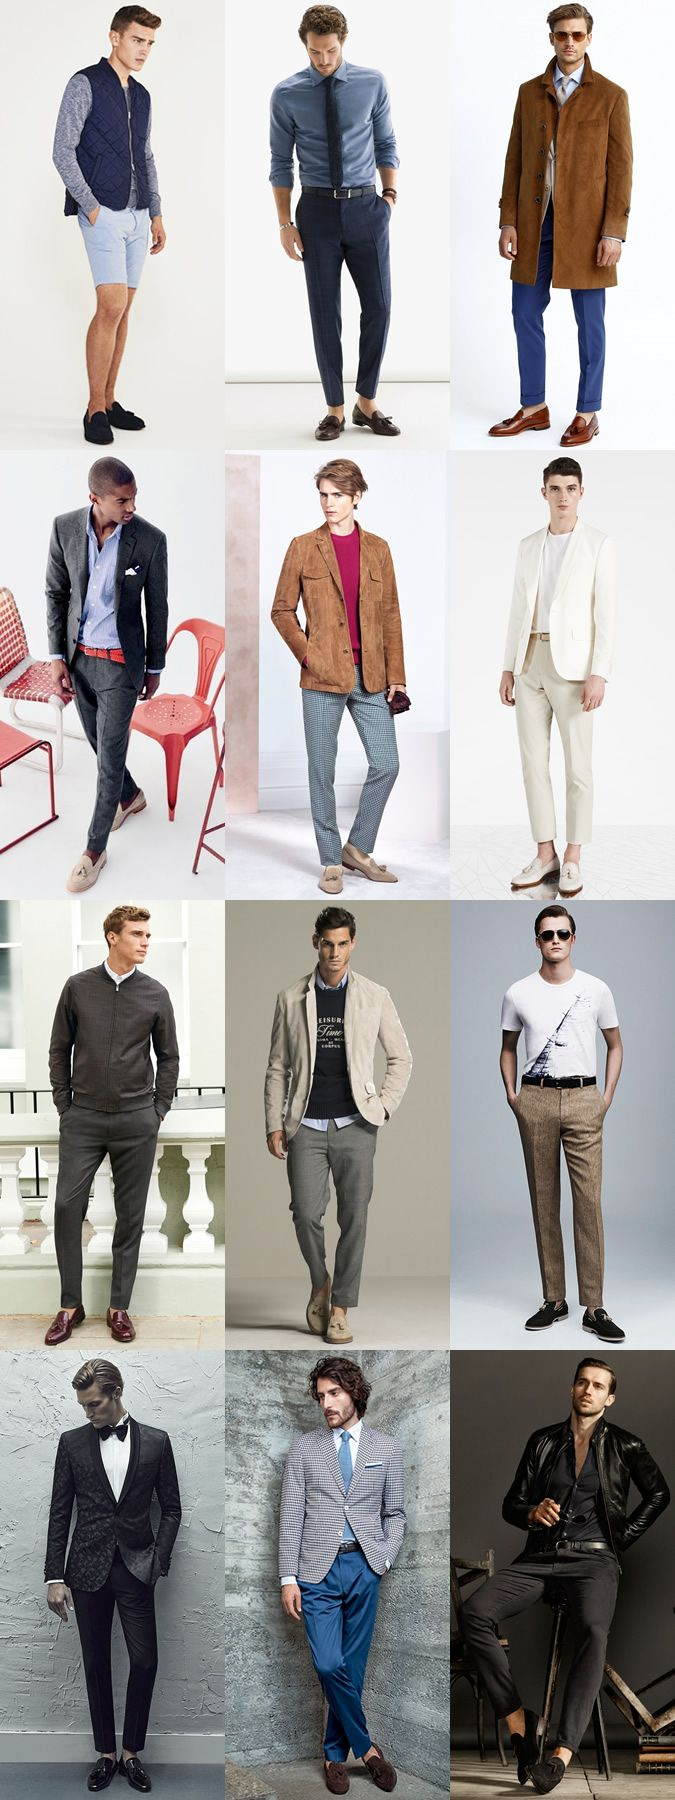 Men's Tassel Loafers Outfit Inspiration Lookbook